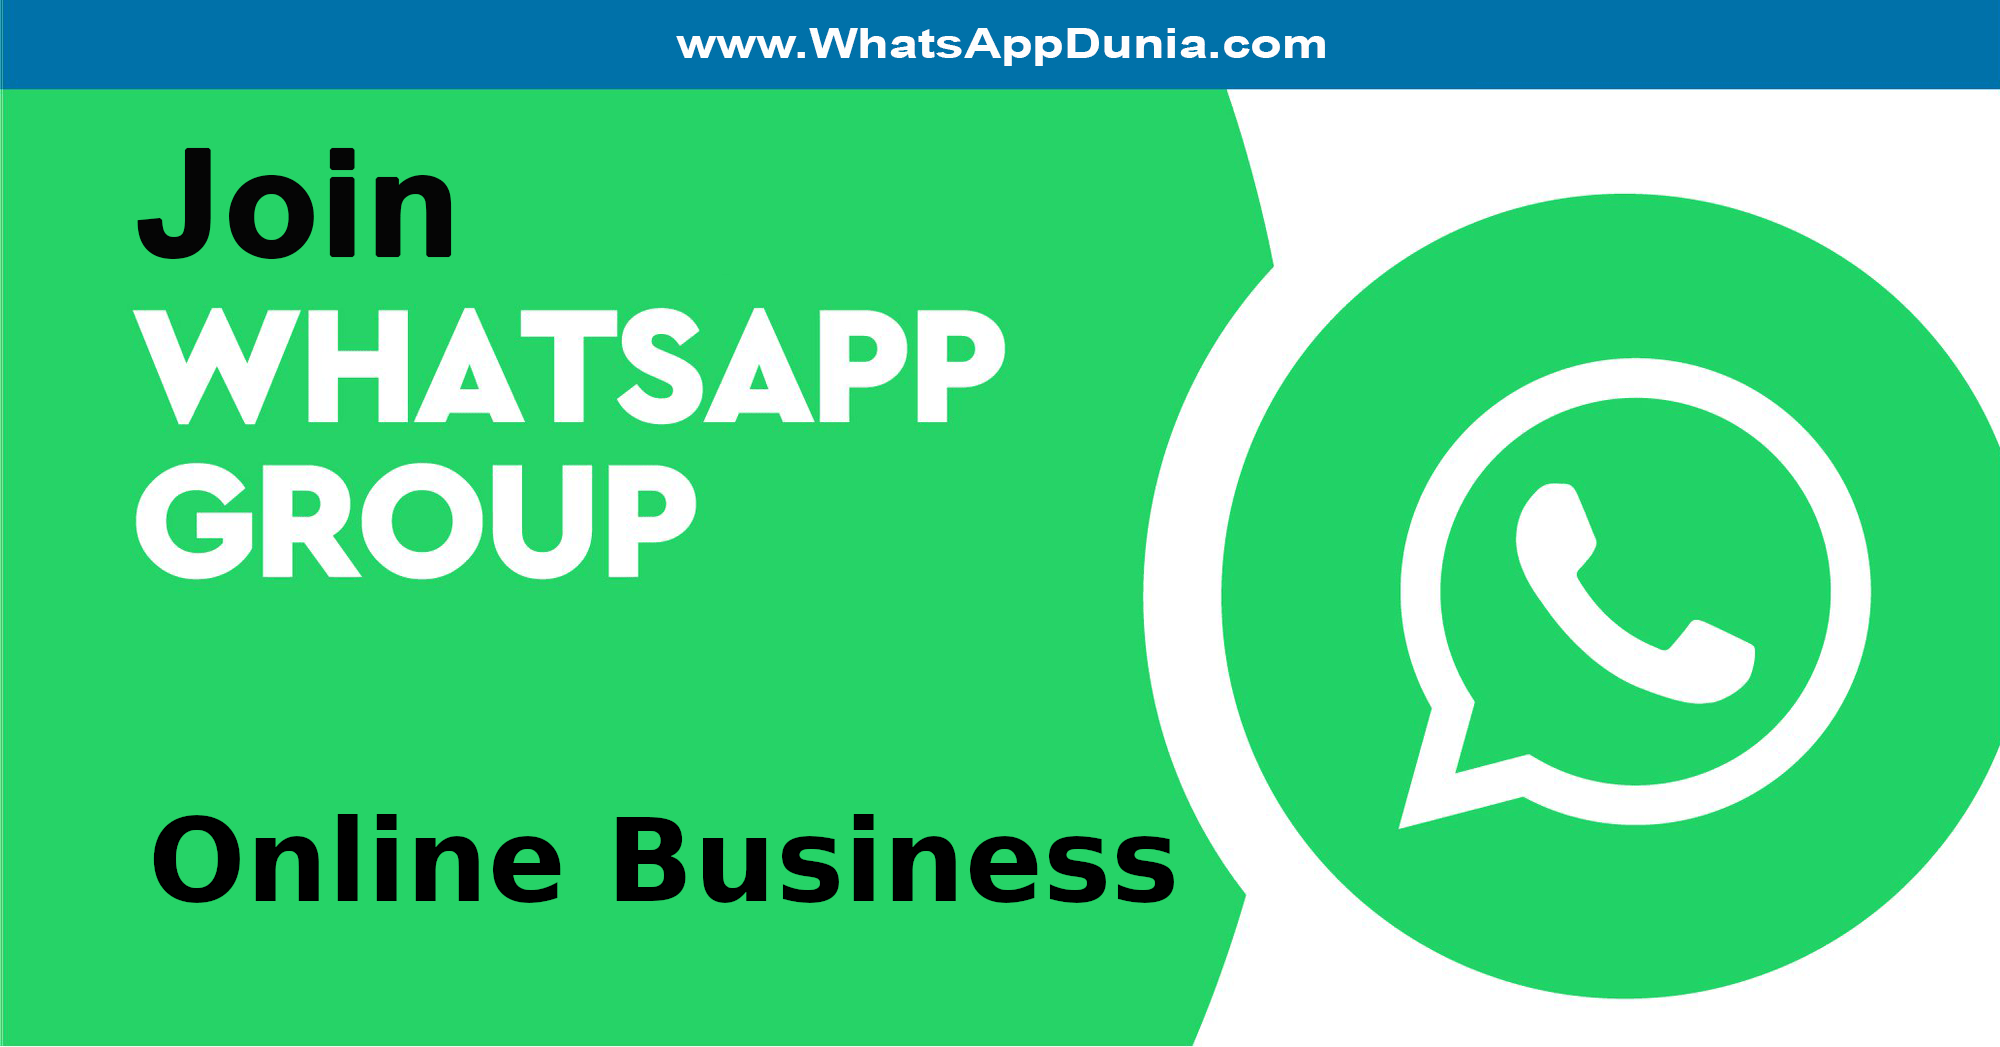 Online Business WhatsApp Group Links